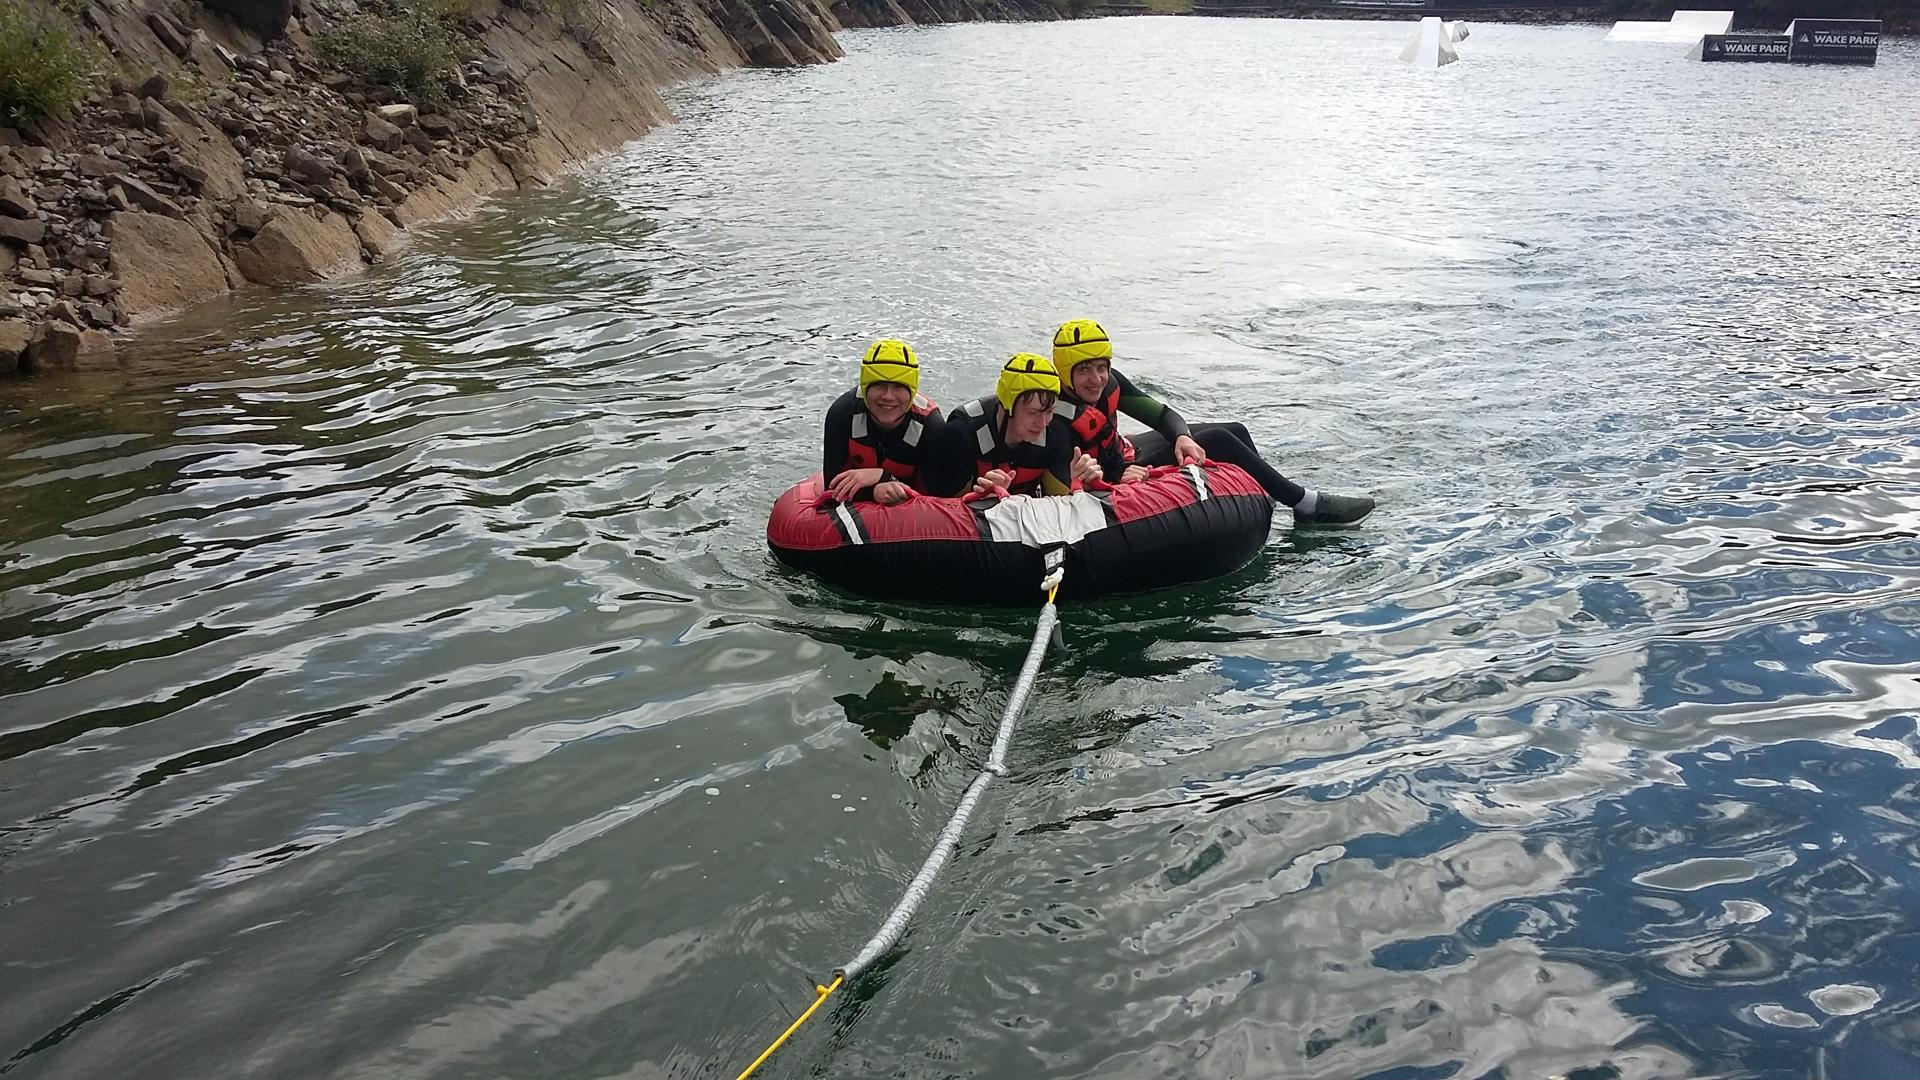 TY Students at Ballyhass Outdoor Pursuits centre 3.jpg